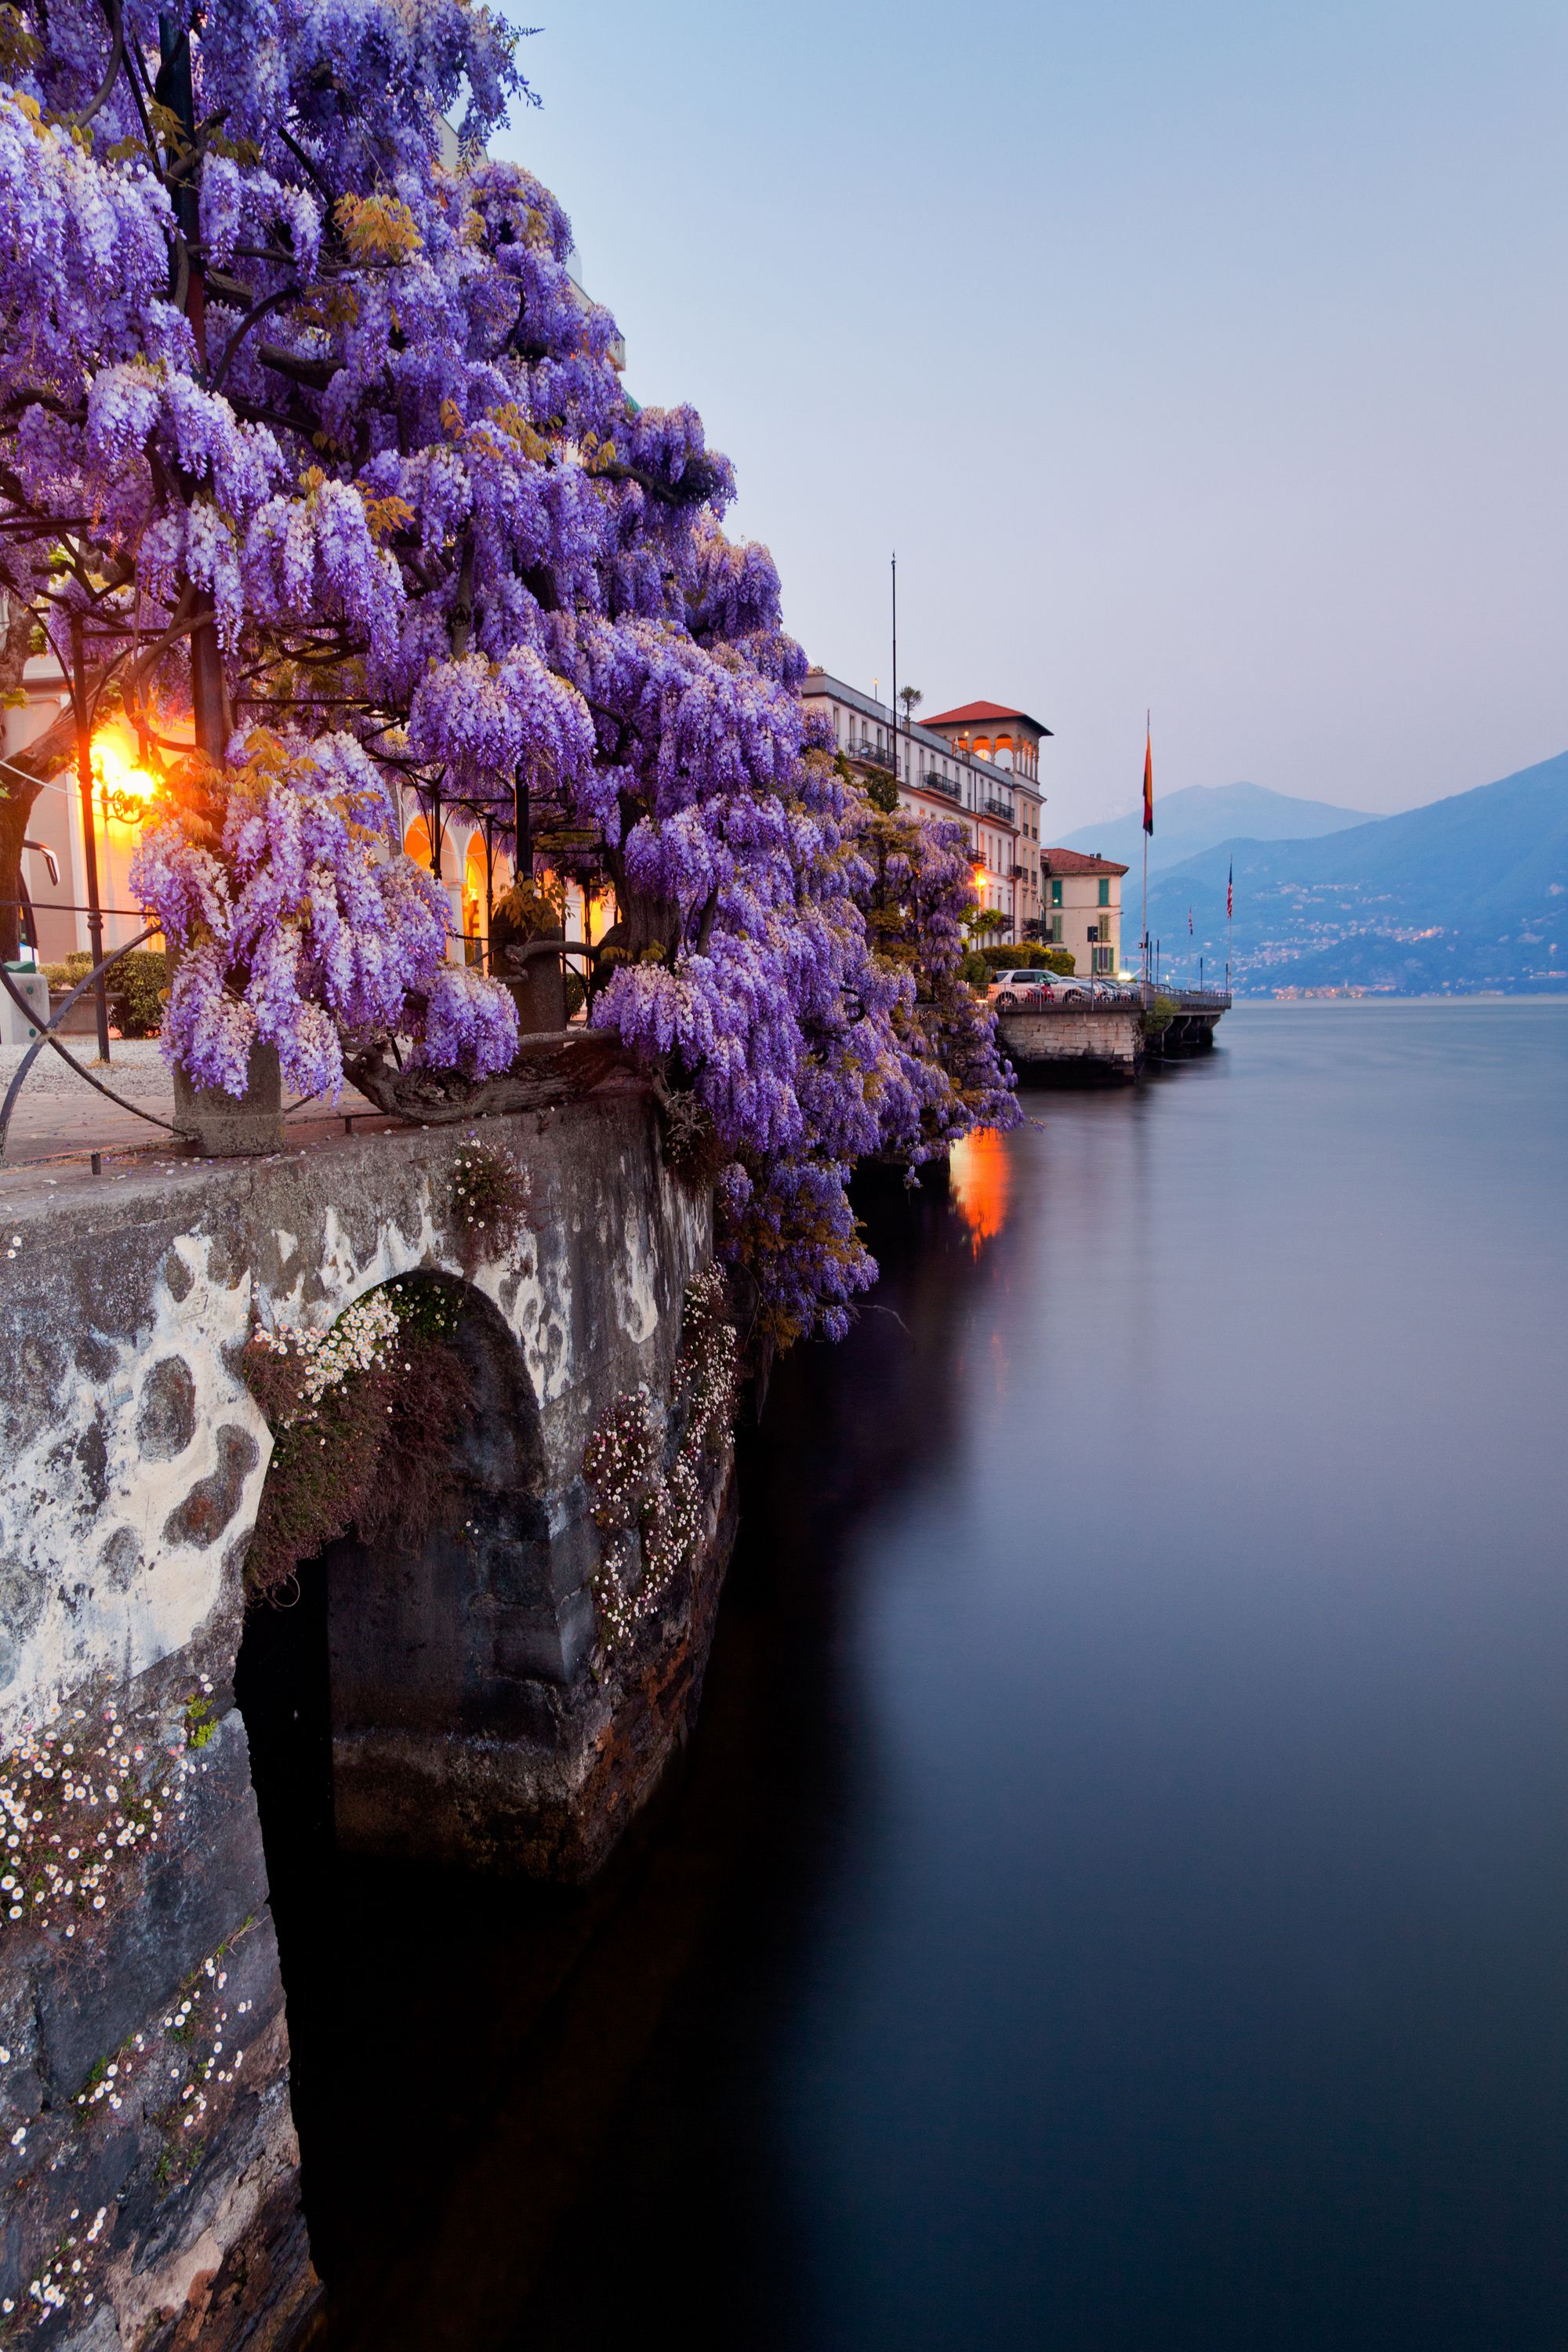 """<p>A popular retreat for the aristocracy during Roman times, Lake Como is still known as a playground for the wealthy. This really comes as no surprise considering the scenic views of the Alps and historic villas dotting its shores. </p><p><em data-redactor-tag=""""em""""><br></em></p><p><em data-redactor-tag=""""em"""">Don't miss our<a href=""""http://www.harpersbazaar.com/culture/travel-dining/a15555/lake-como-travel-ideas/"""" target=""""_blank"""">Lake Como Guide</a>.</em></p>"""